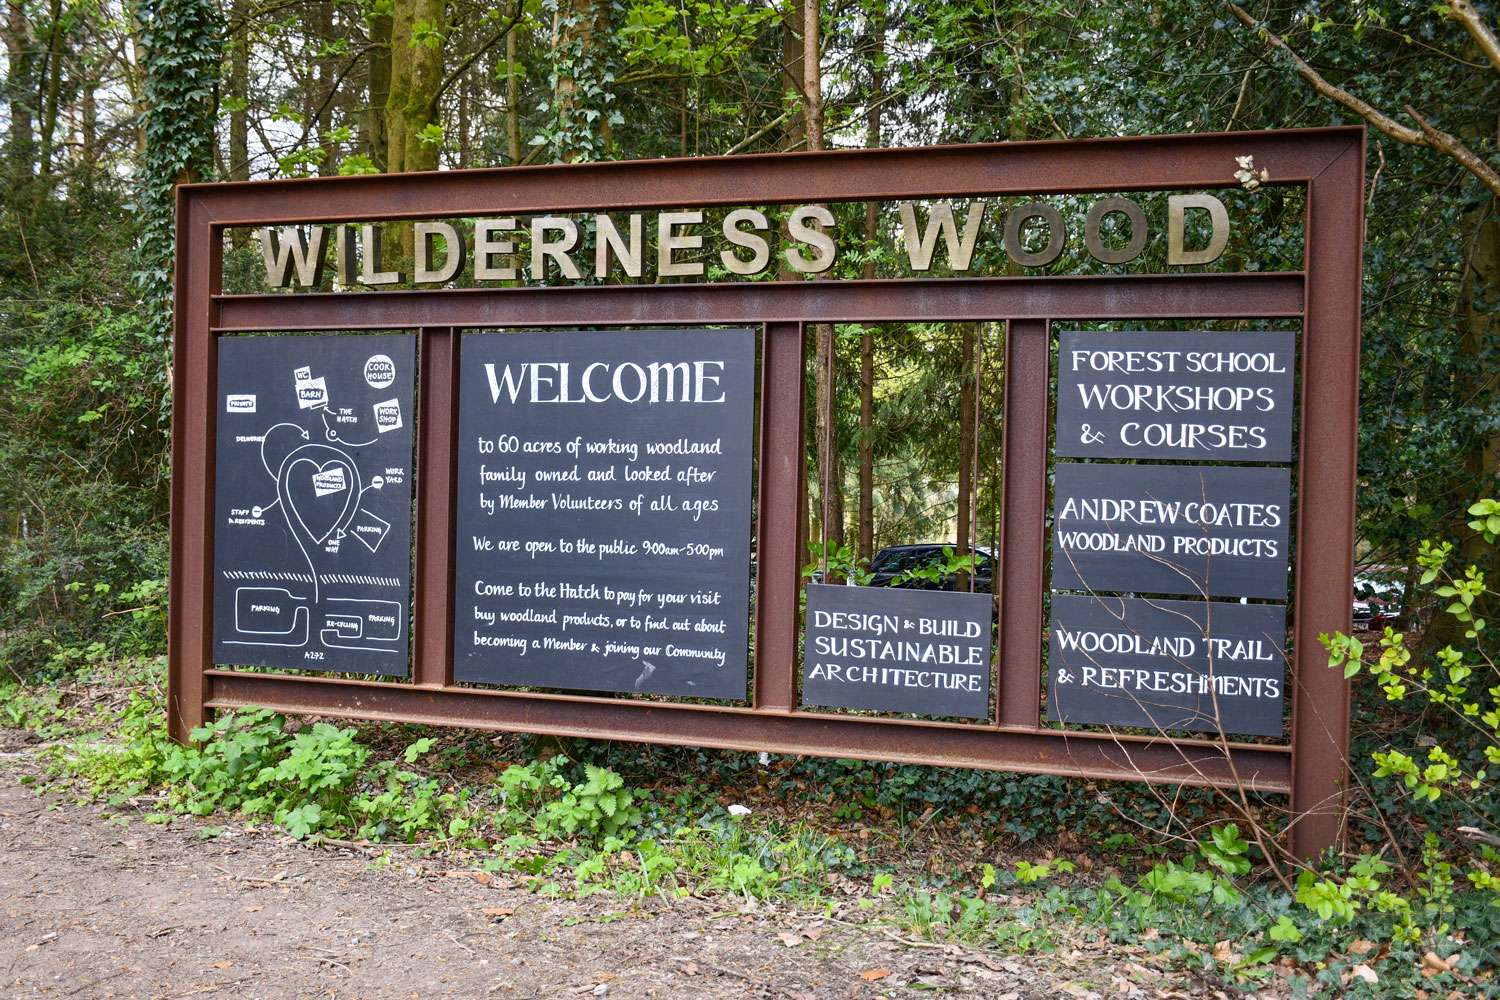 The entrance to Wilderness Wood © French Moments